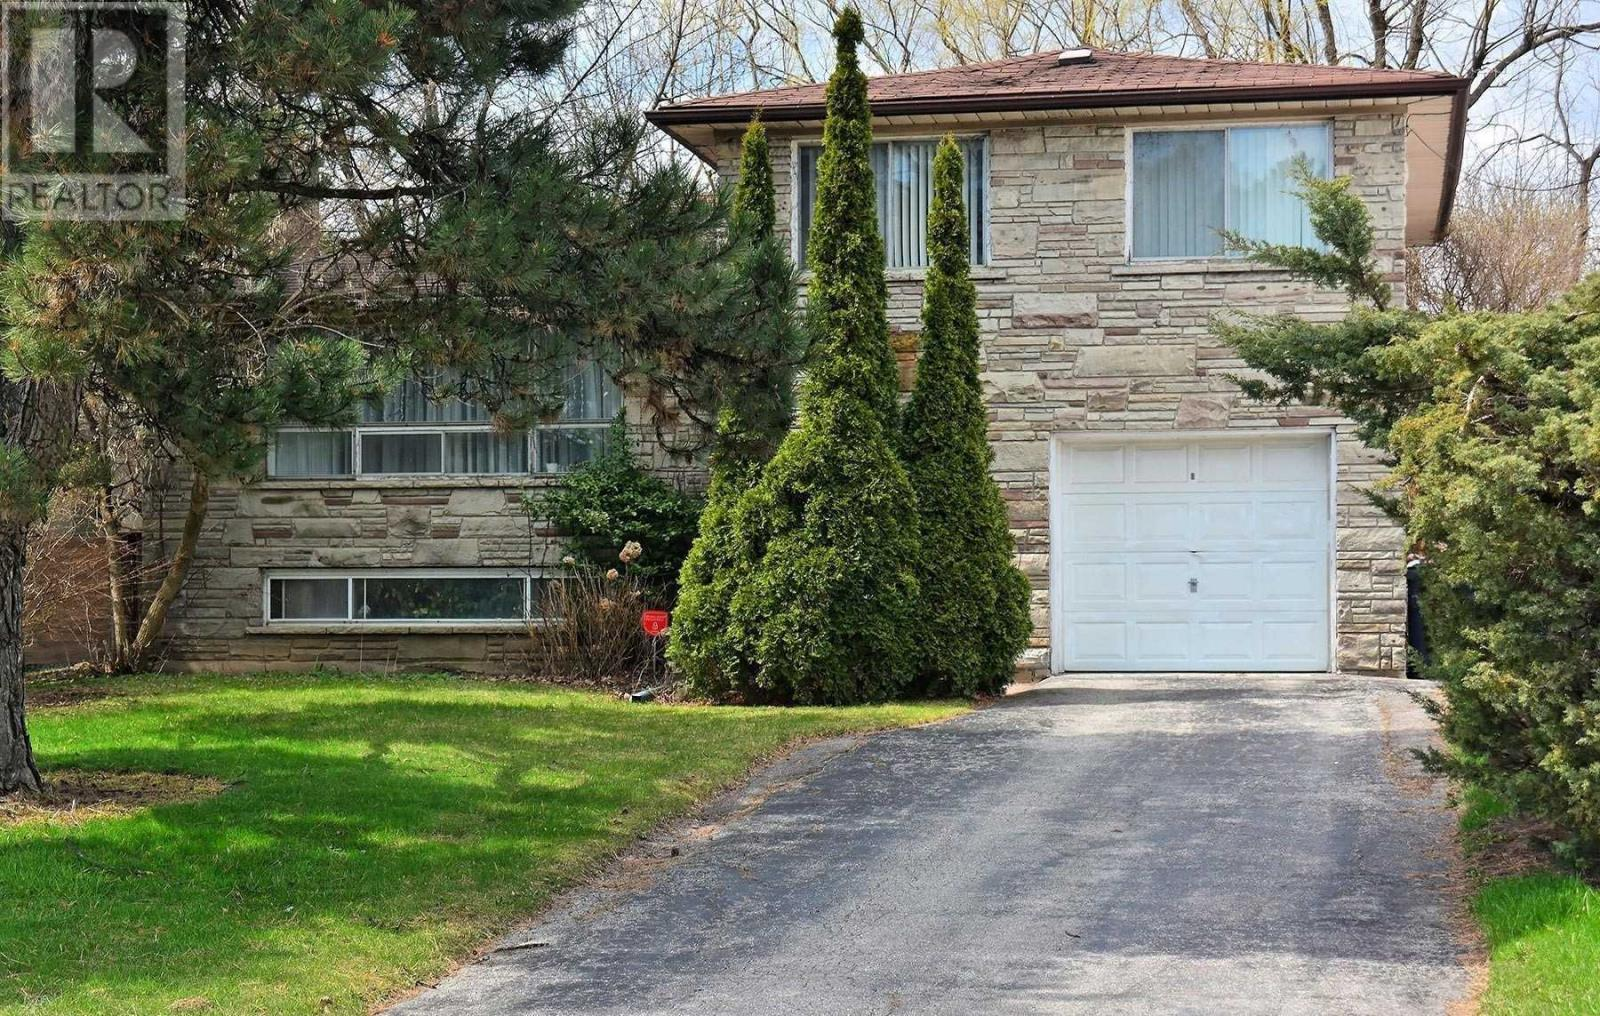 16 KNOLLVIEW CRES, Toronto, Ontario, Canada M2K2E1, 4 Bedrooms Bedrooms, Register to View ,2 BathroomsBathrooms,House,For Sale,Knollview,C5203893